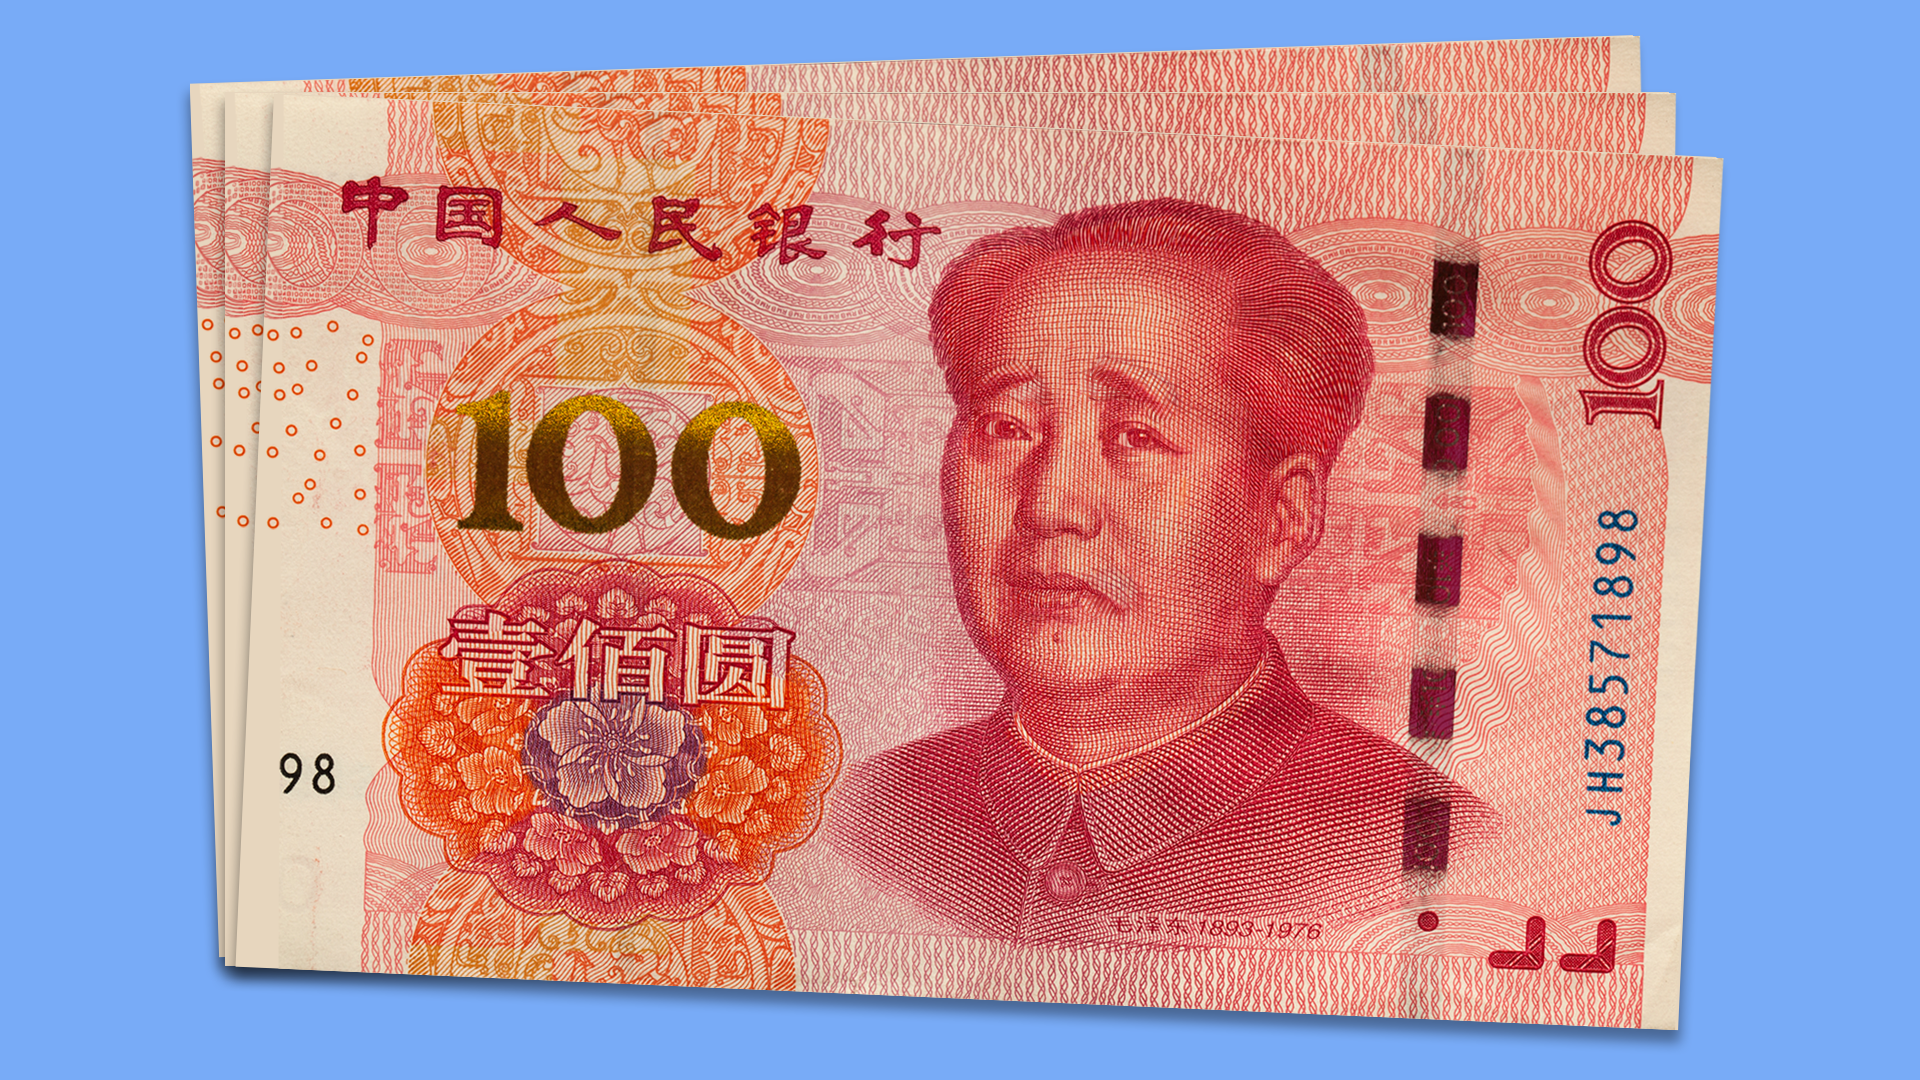 Illustration of a Chinese 100 yuan bill with an unhappy Chairman Mao photo on the bill